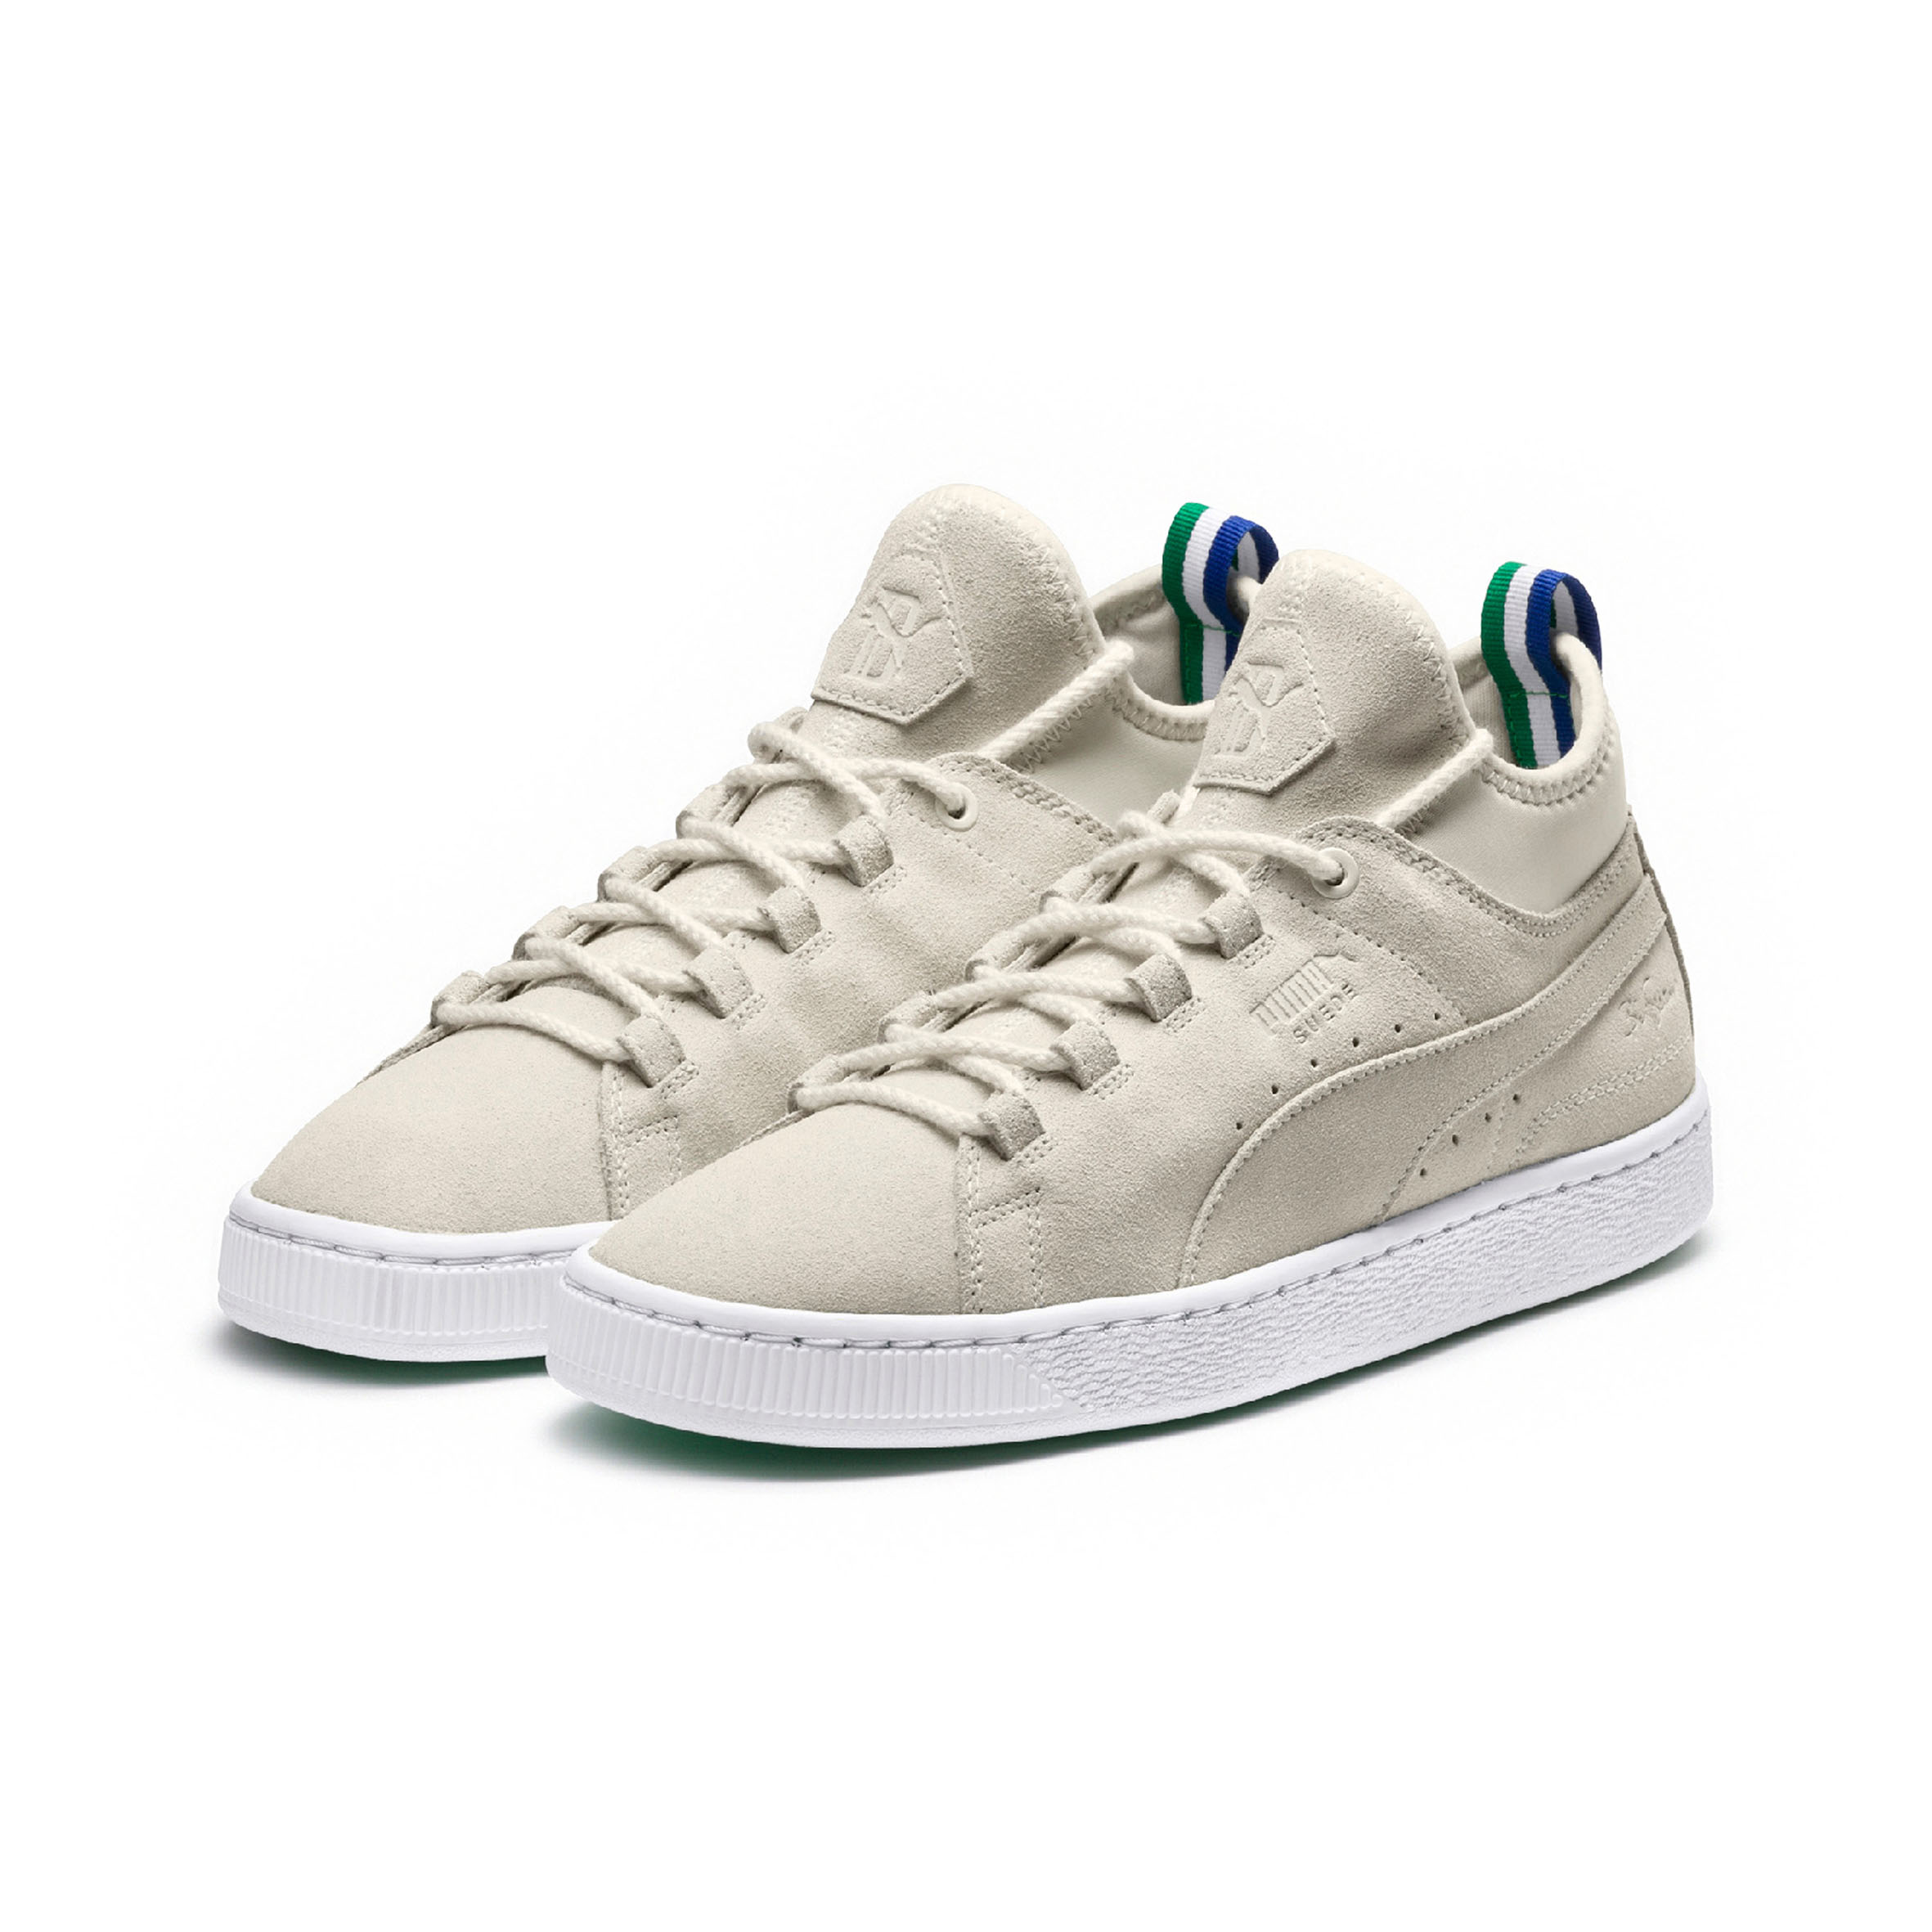 Luxury meets classic, Detroit style for Big Sean Suede 50 Drop Big Sean Suede Mid Classic R2499 lo